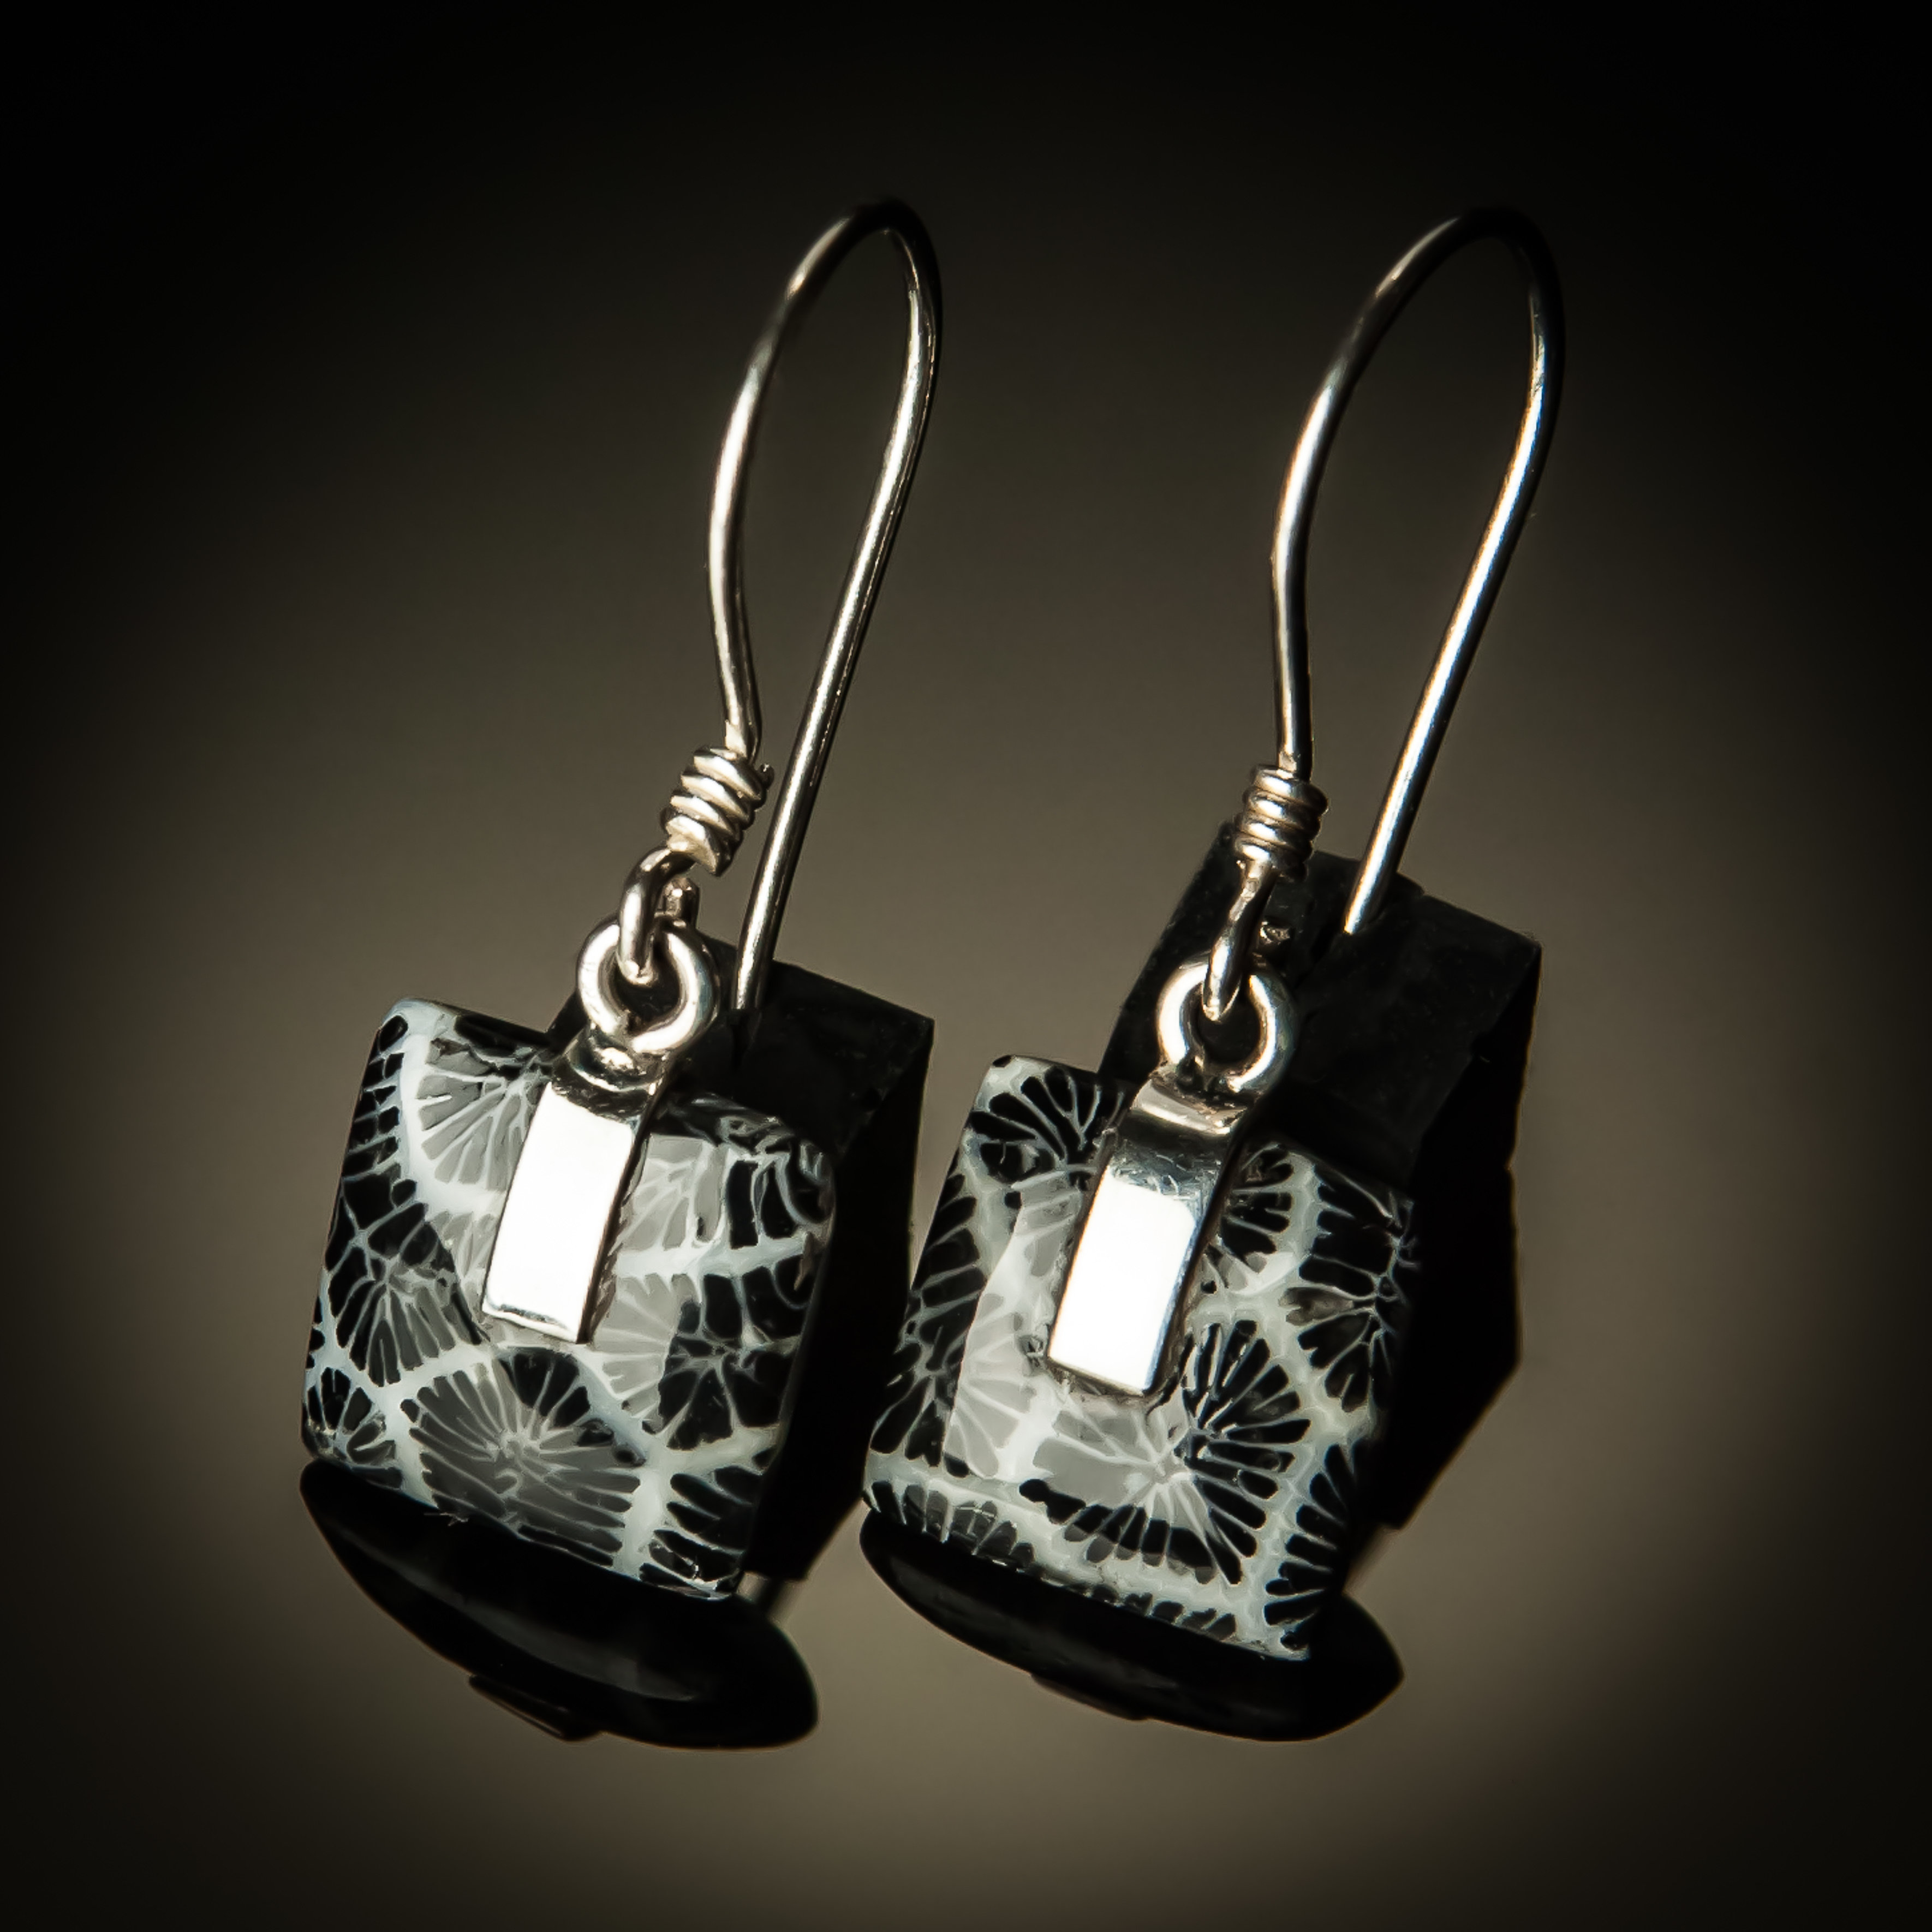 Black Coral Square Sterling Silver Earrings PKC-07Sm-Black coral